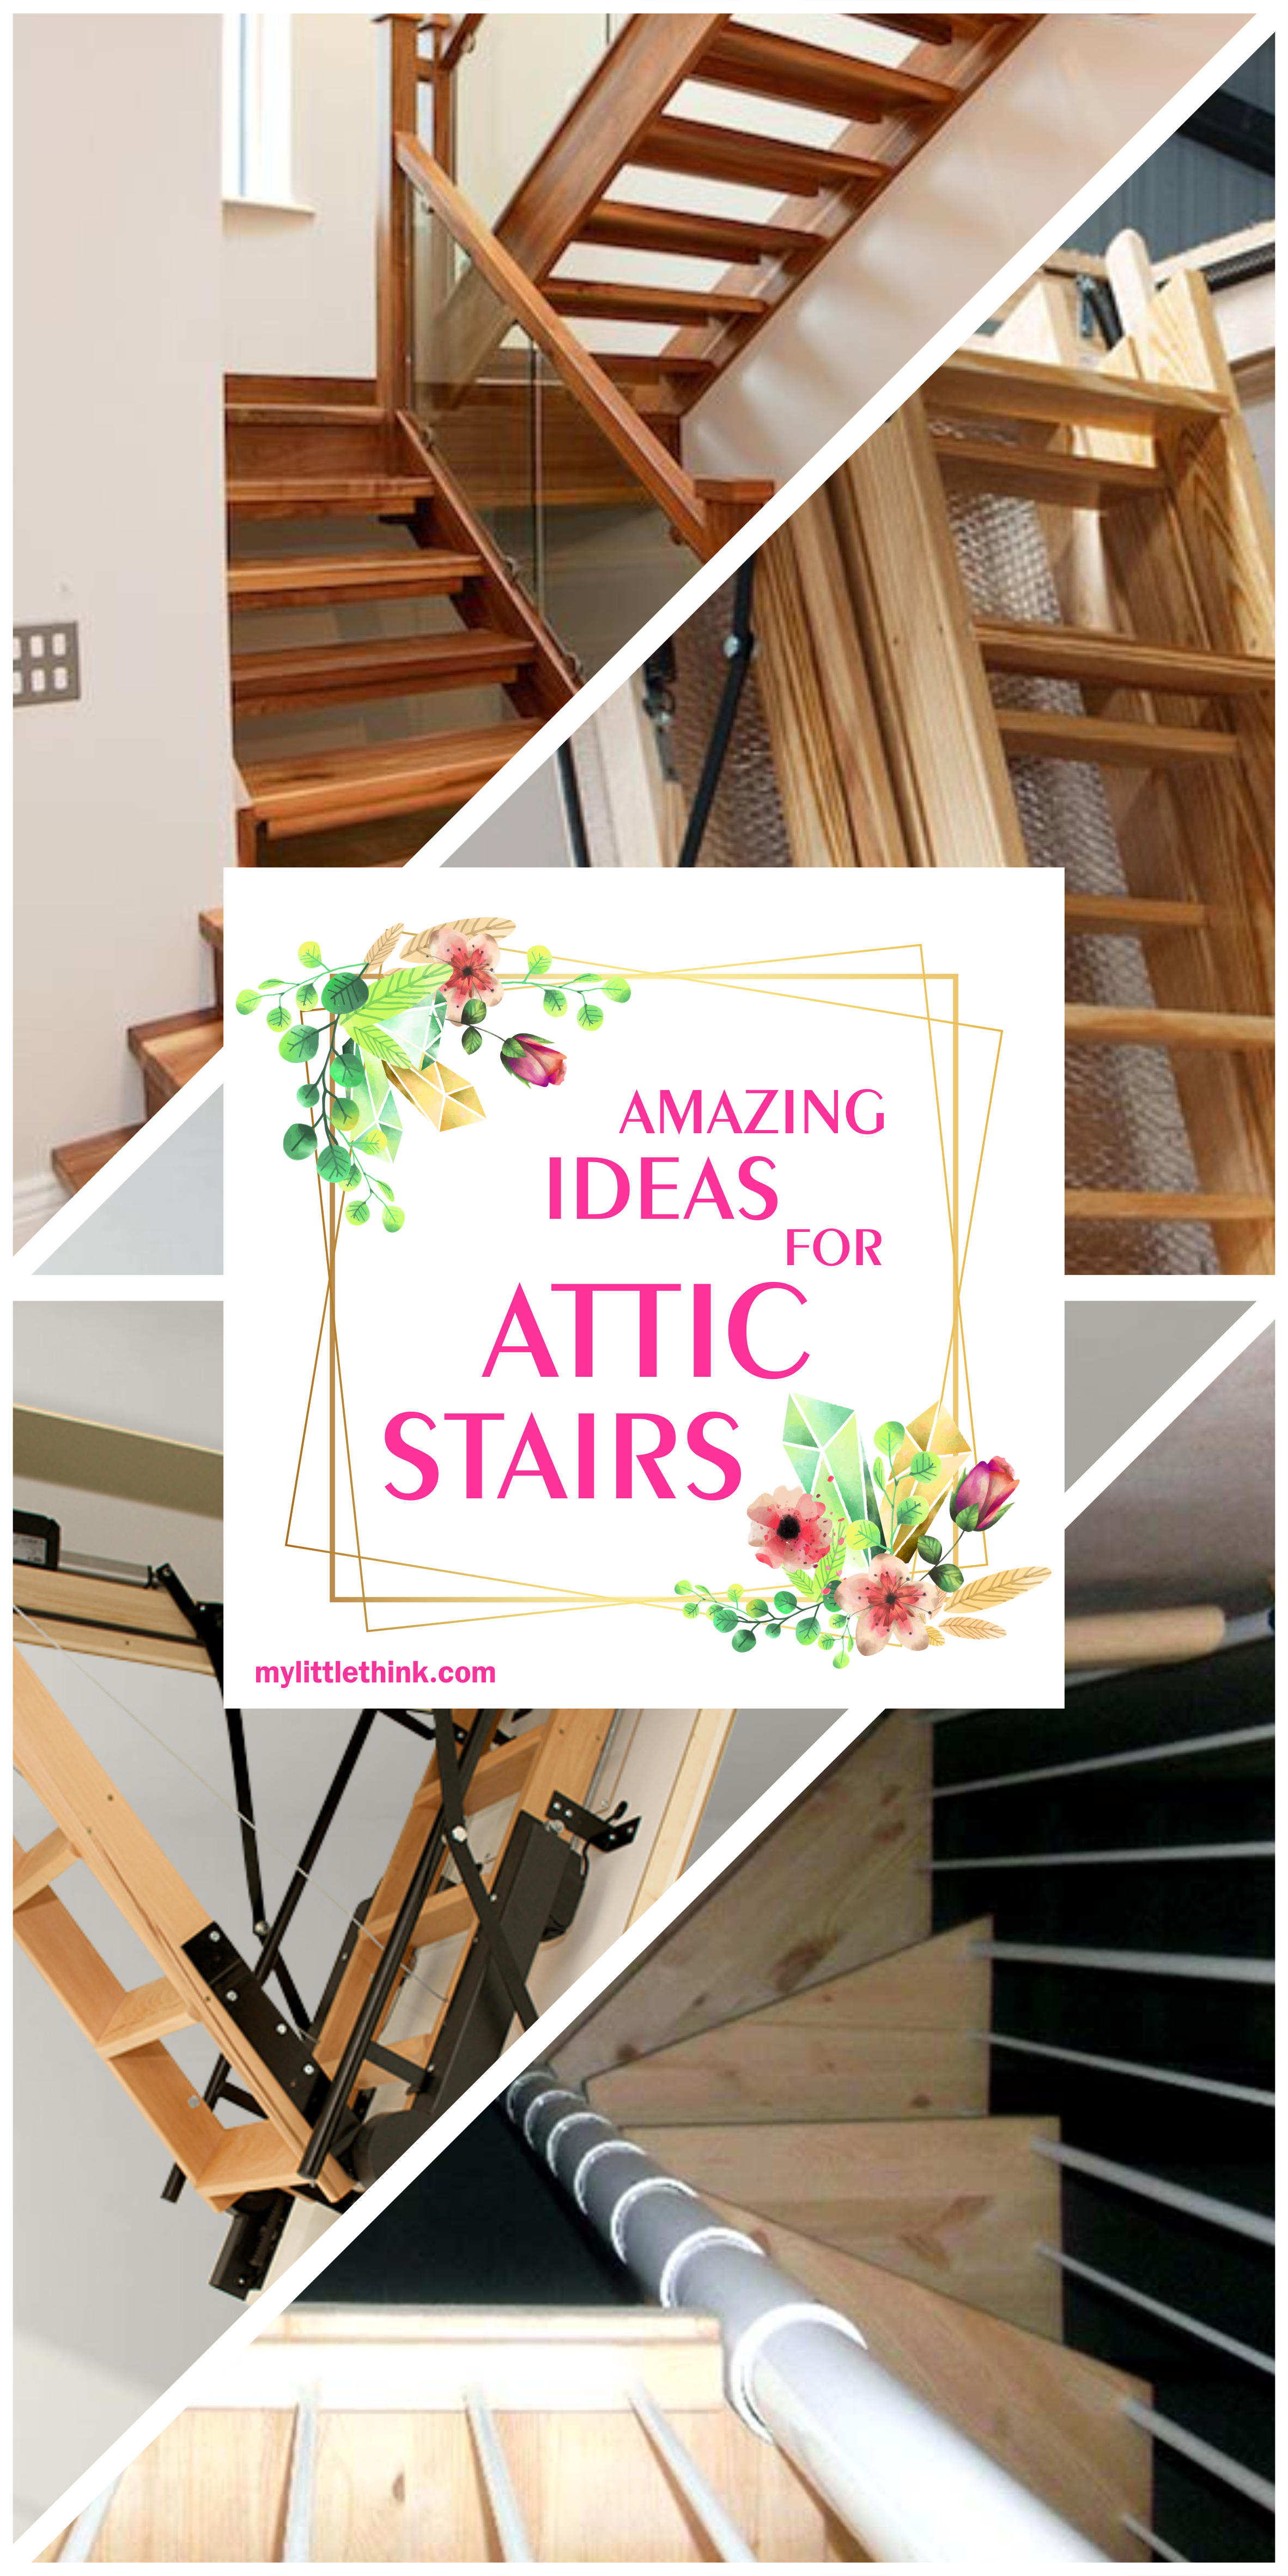 37+ The Most Creative Attic Stairs Ideas For Your Home